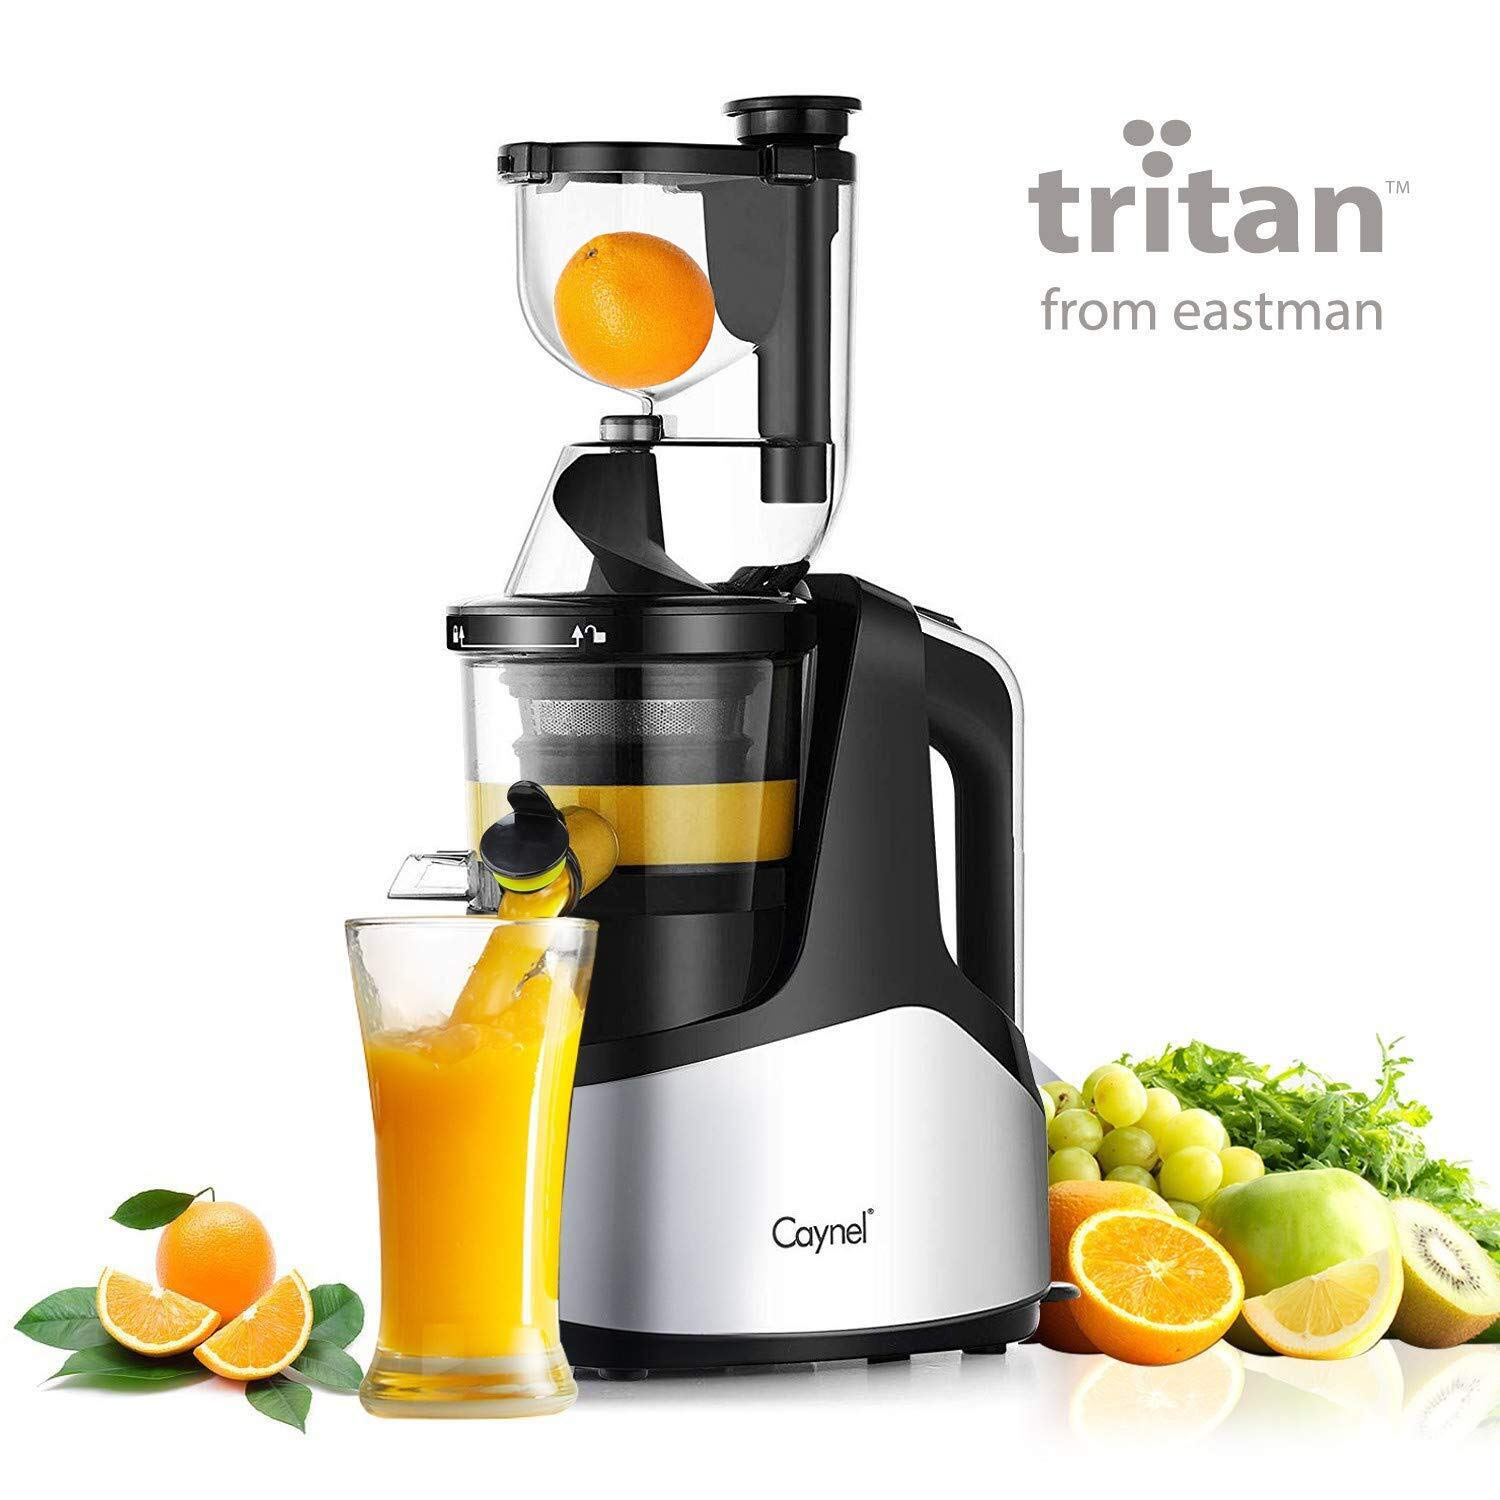 """Caynel Slow Masticating Juicer Cold Press Extractor with 3"""" Wide Chute for Fruits, Vegetables and Herbs, Quiet Durable Motor with Reverse Function, Smoothie Strainer Included, High Yield Vertical Juicer Easy Cleaning , BPA Free, Silver"""